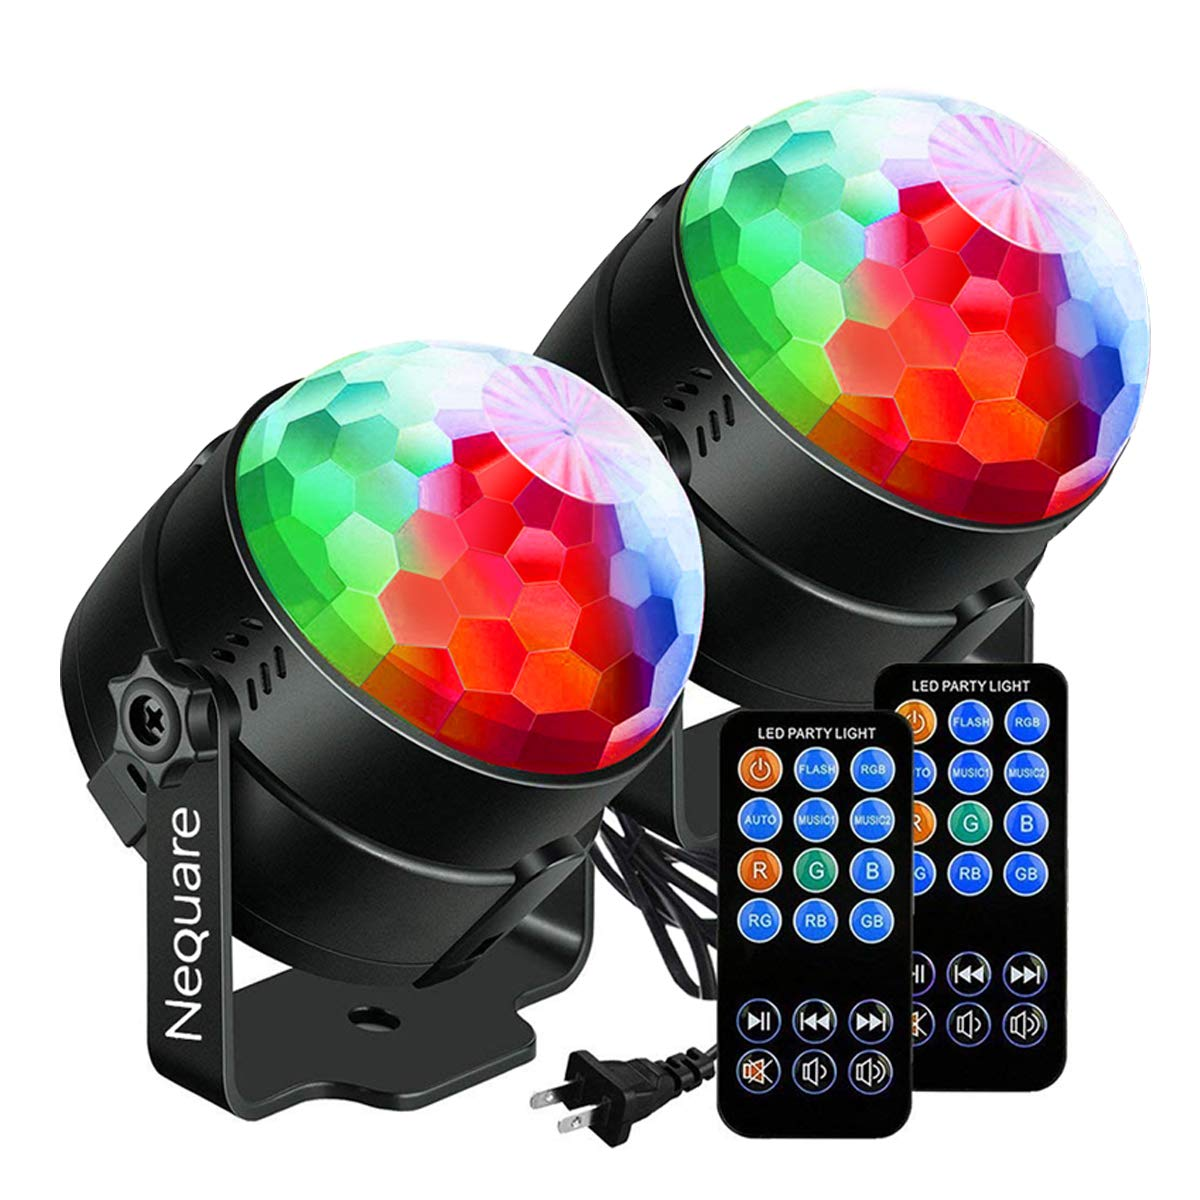 NEQUARE [2-Pack] Party Lights Sound Activated Disco Ball Strobe Light 7 Lighting Color Disco Lights with Remote Control for Bar Club Party DJ Karaoke Xmas Wedding Show and Outdoor